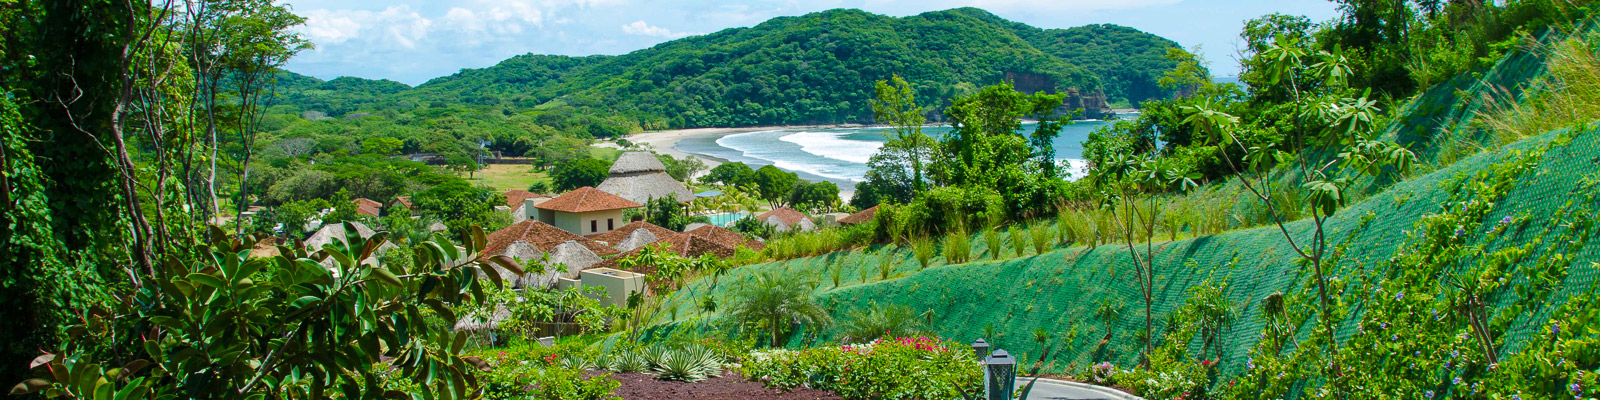 Nicaragua Granada and the Pacific Coast Travel Tour